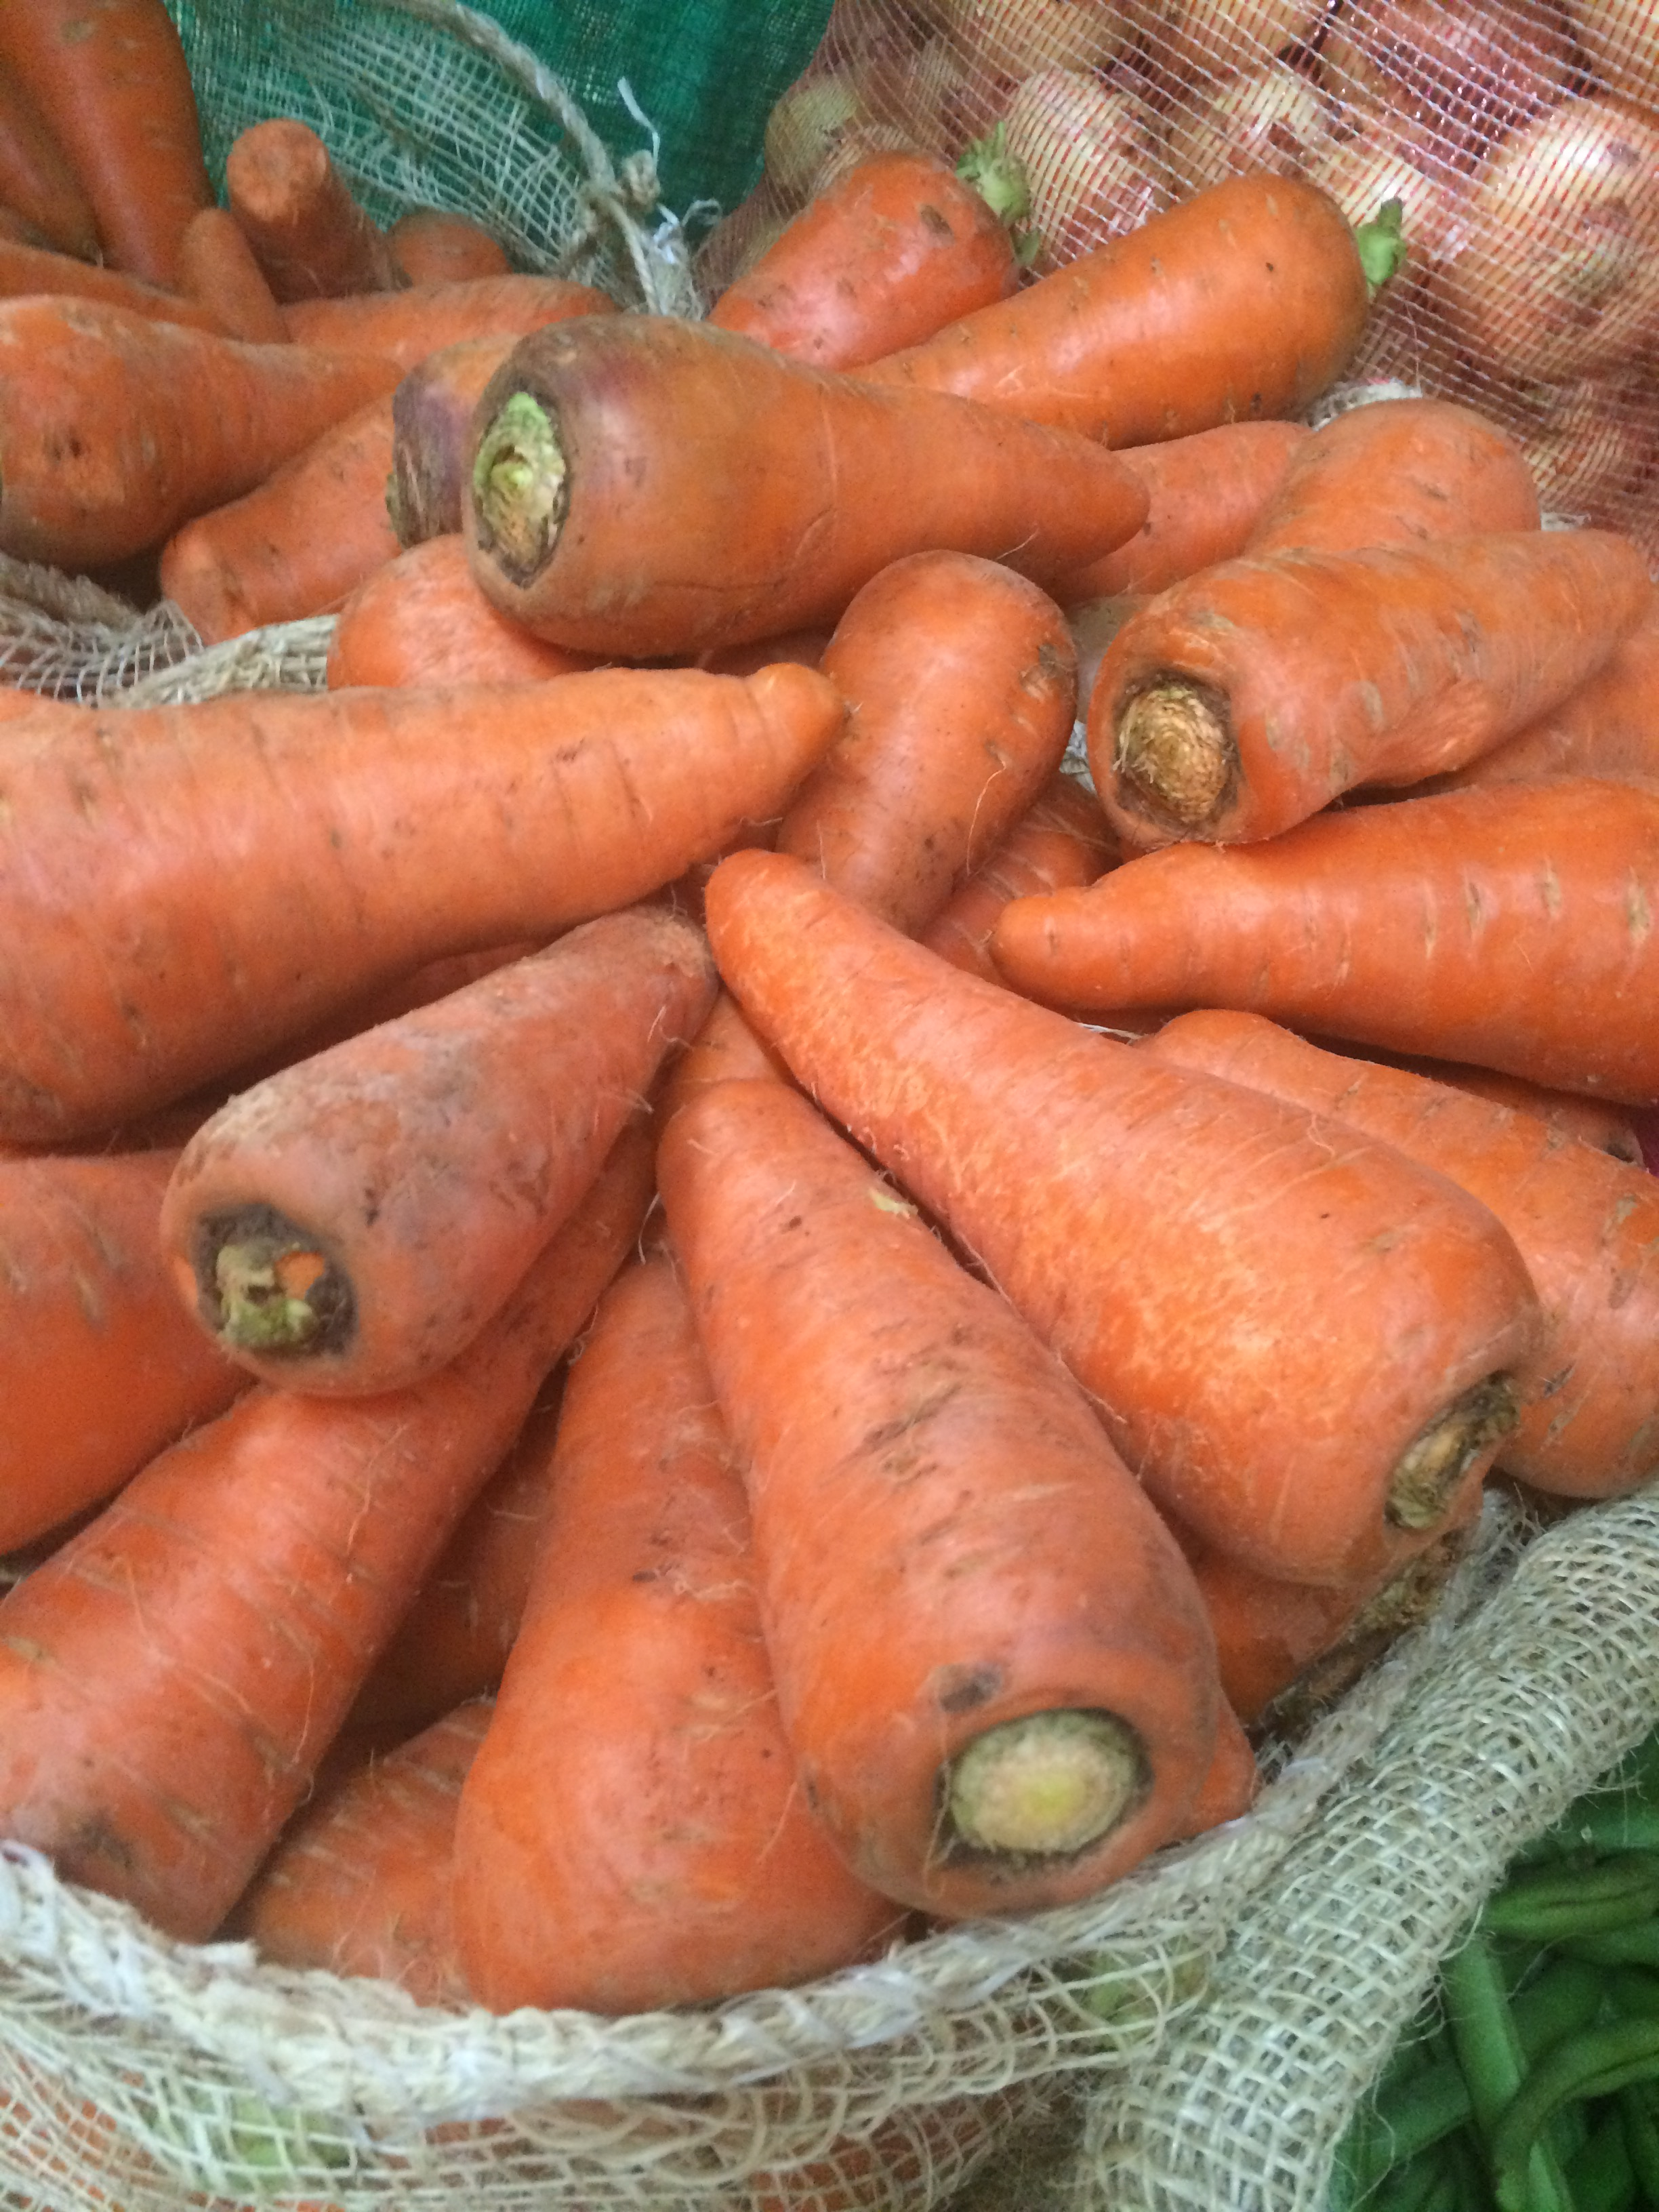 Big-ass carrots, for you foodies!